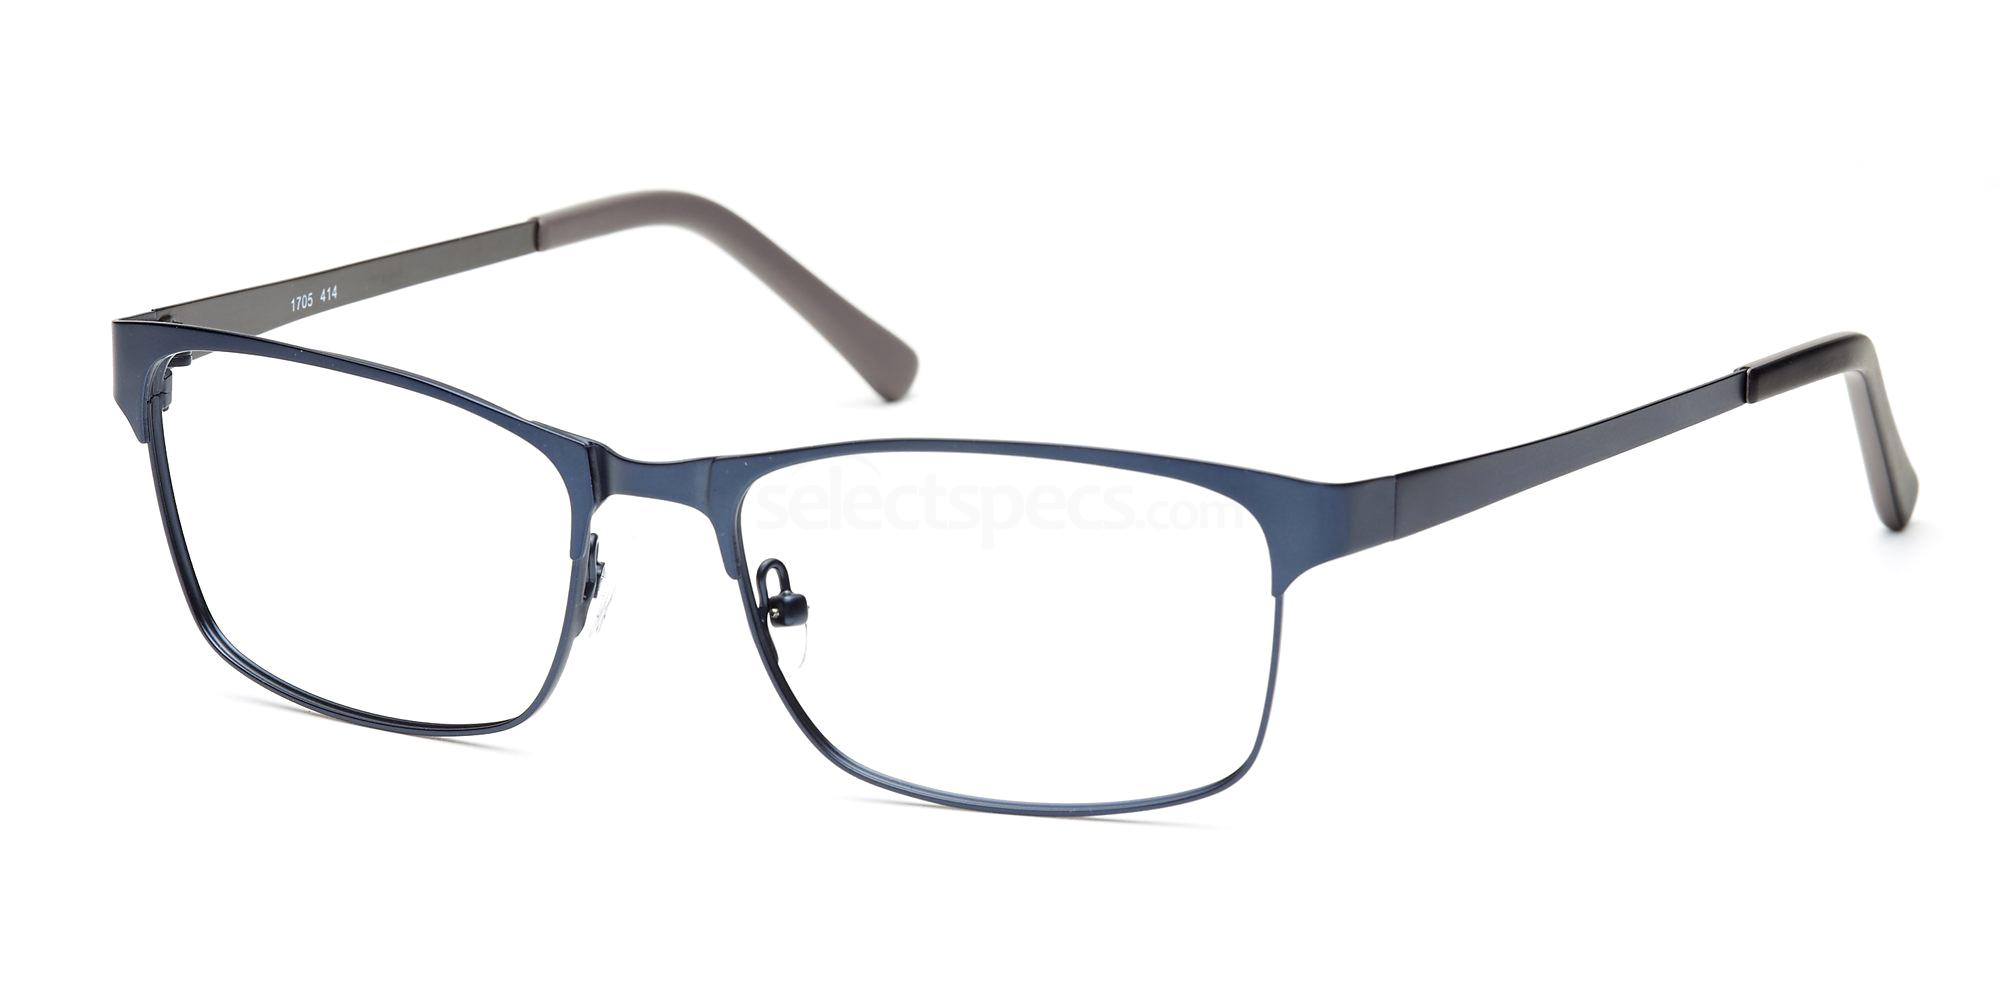 flextra titanium glasses flexible lightweight